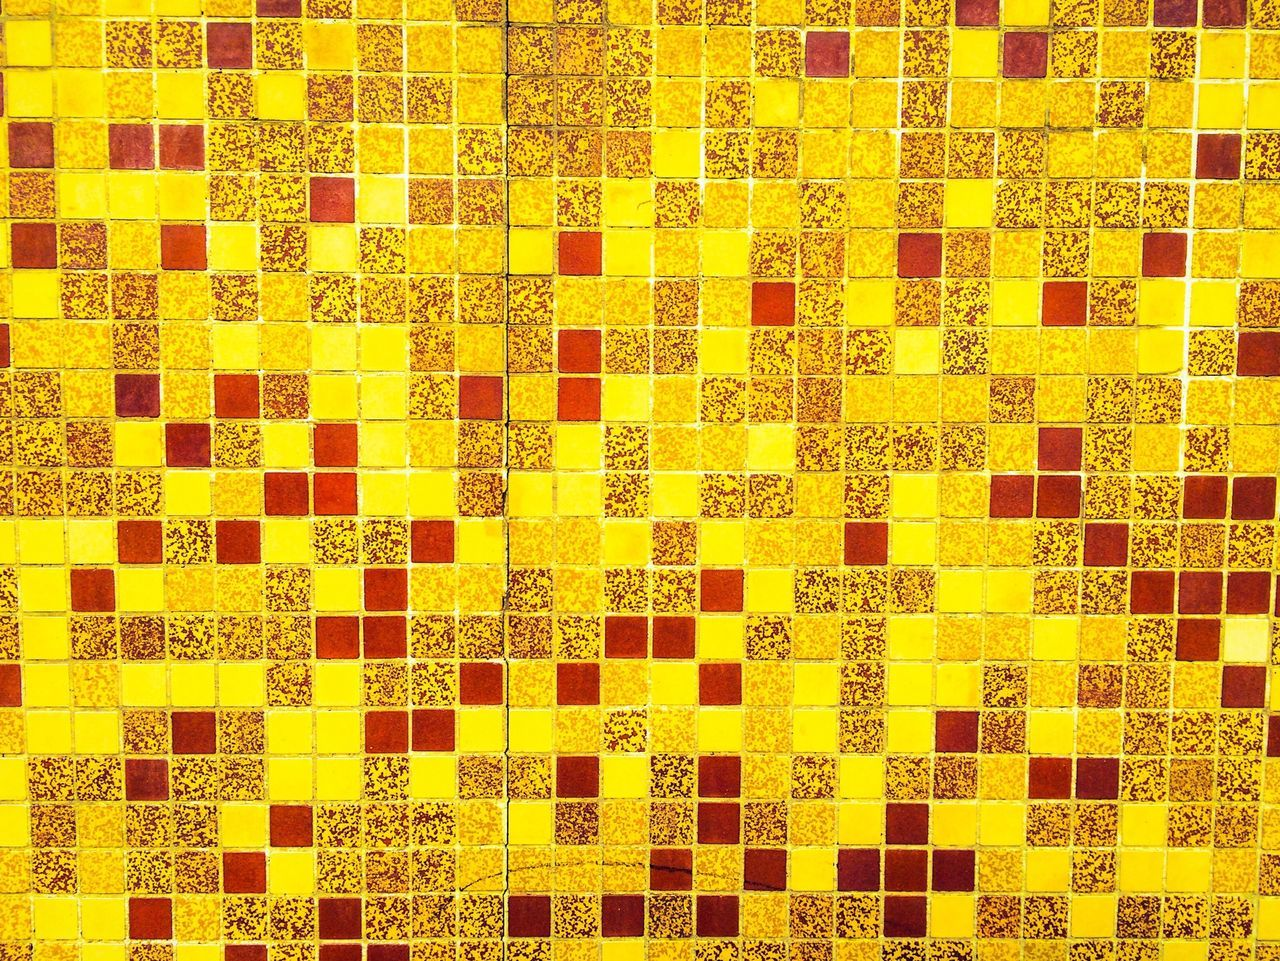 Beautiful stock photos of pattern, Abstract, Backgrounds, Full Frame, No People